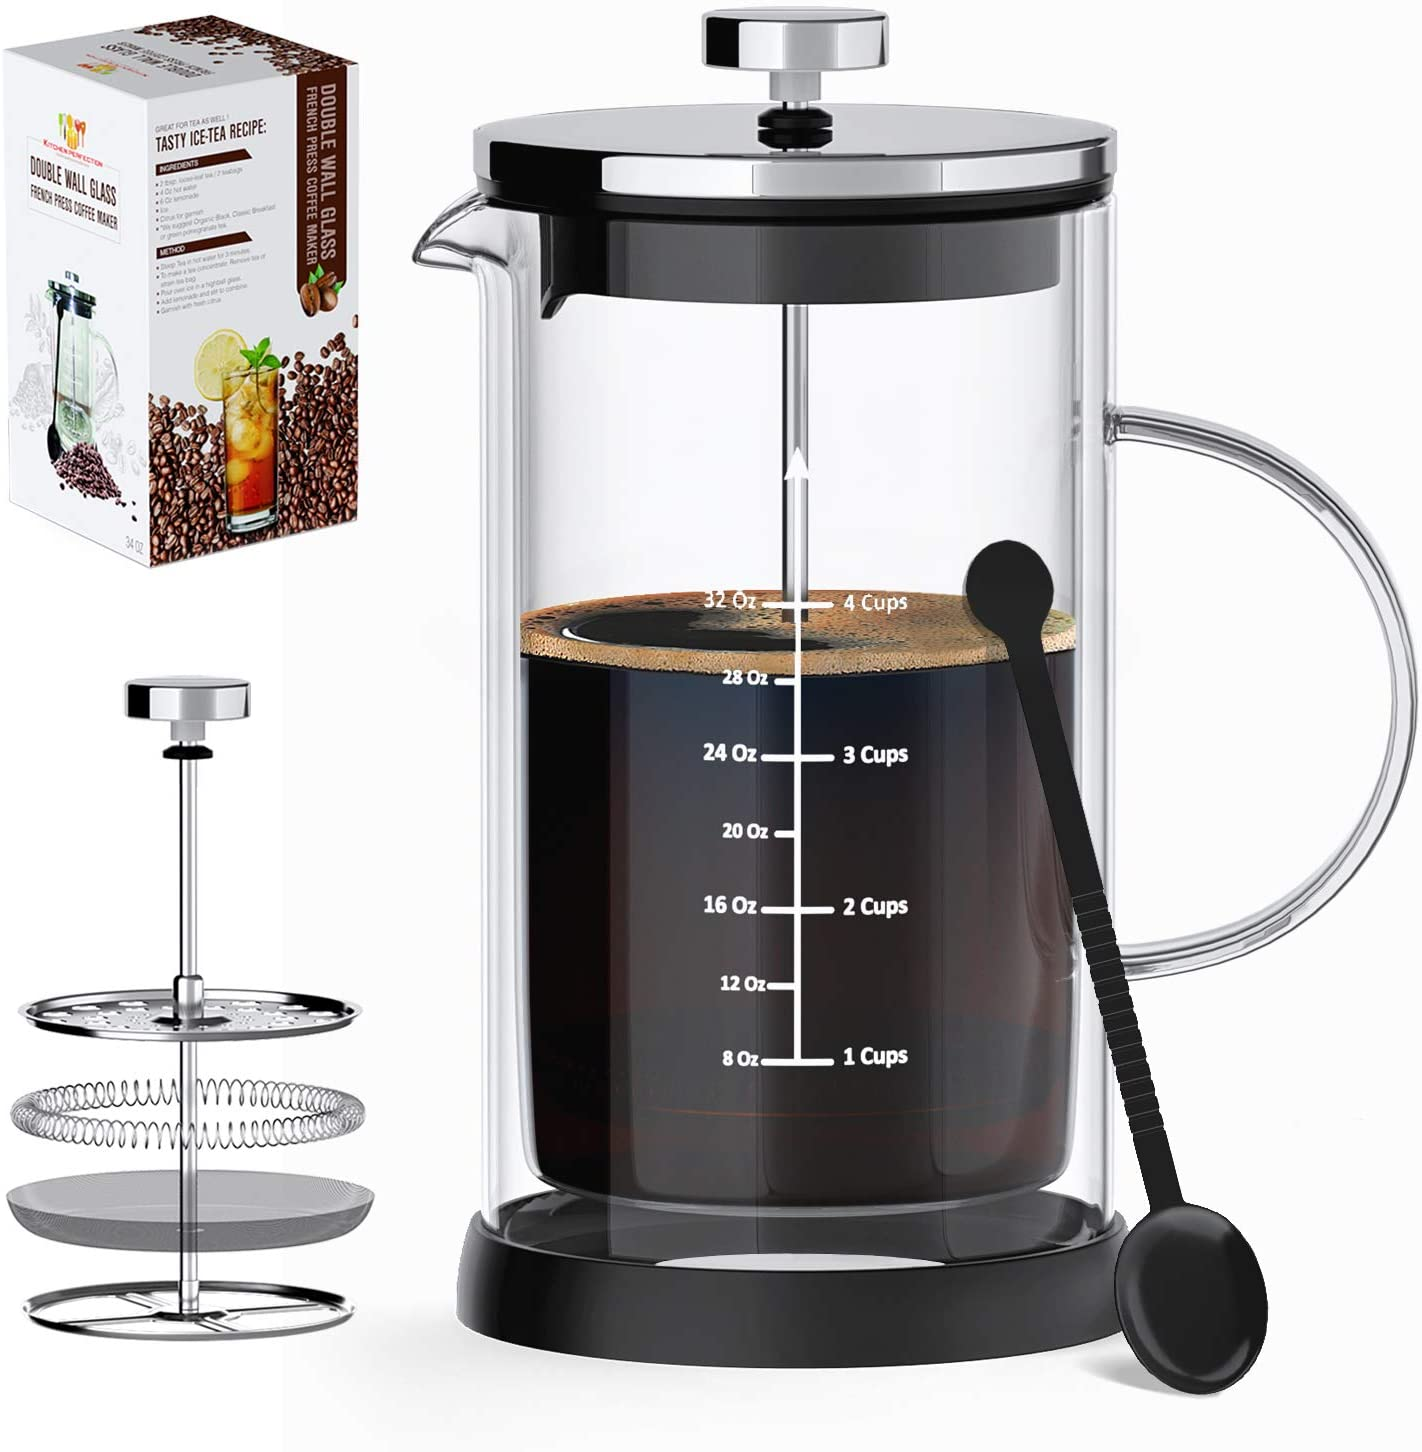 French Press Coffee Maker Tea Maker- Double Wall Insulated Borosilicate One-Piece Glass Carafe,Heat Resistant w Filtration System,BPA-Free, Durable Easy to Clean, Large Capacity 34 Oz 3 Bonuses